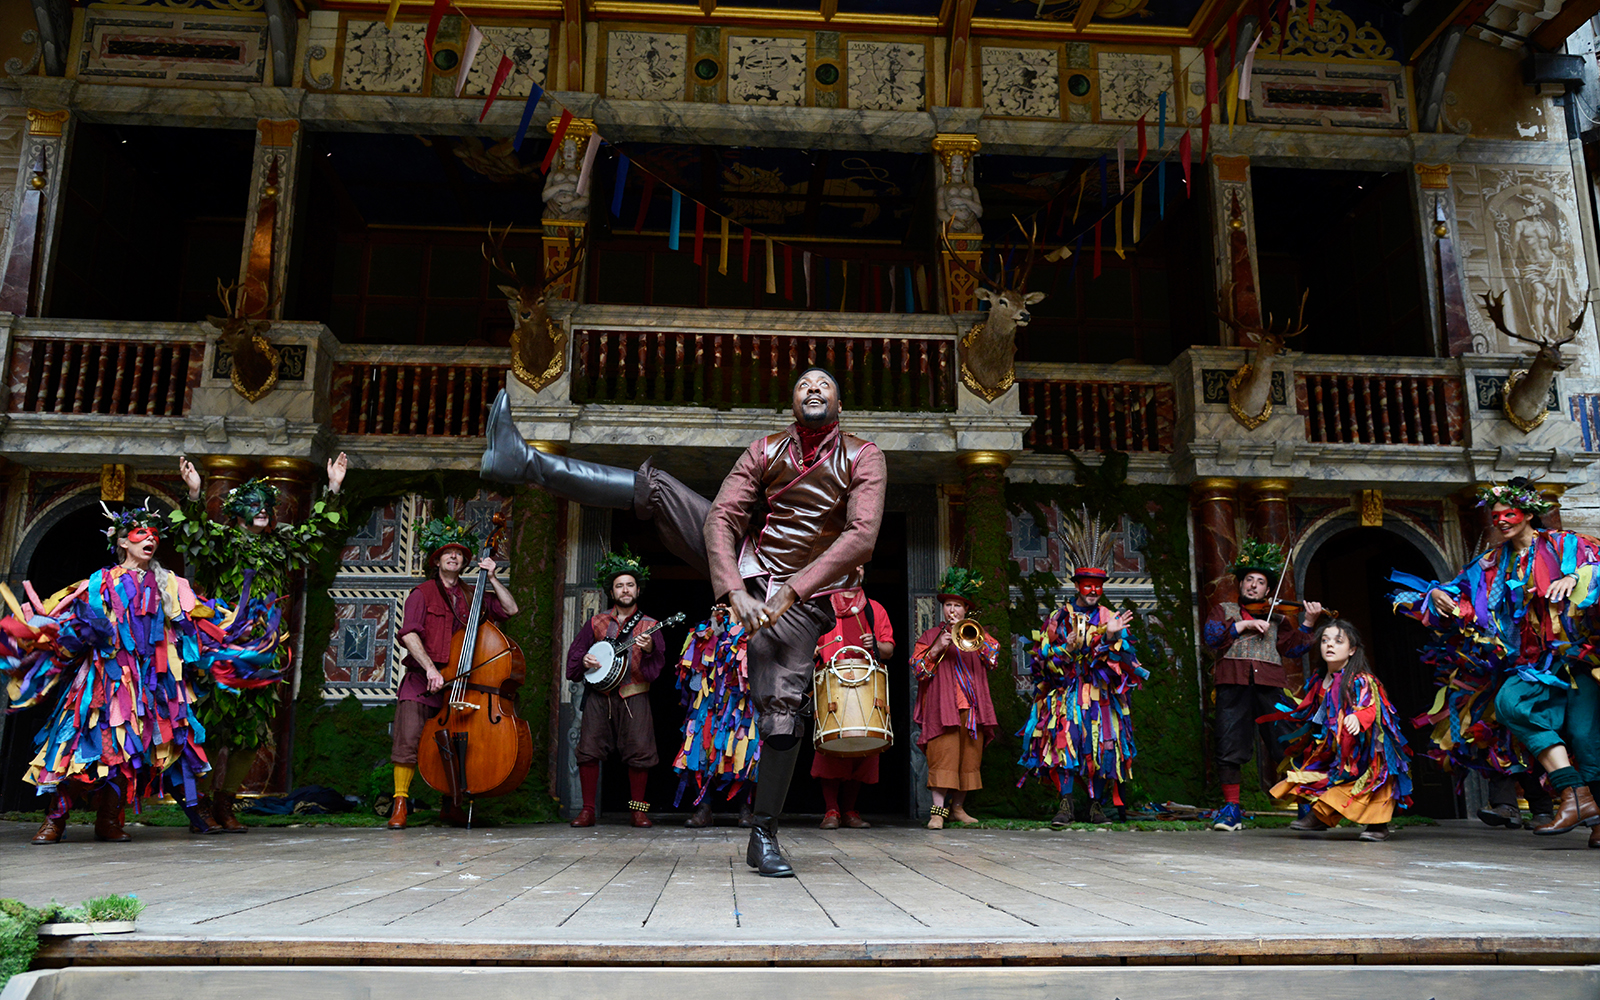 A actor kicks high in the air while others dance around him in colourful costumes